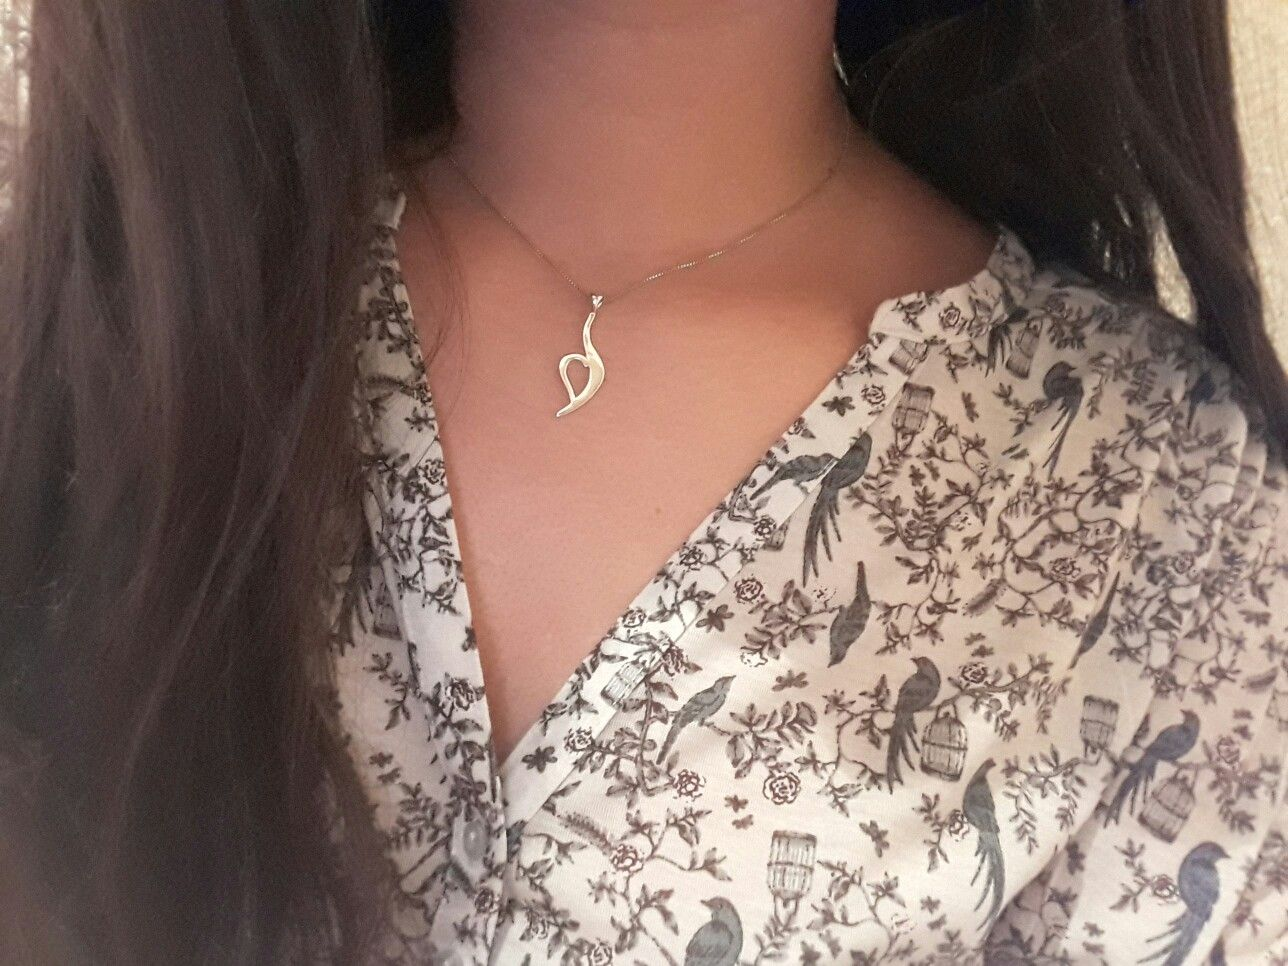 Neda Neda Symbol Neda Necklace Eating Disorder Recovery Anorexia